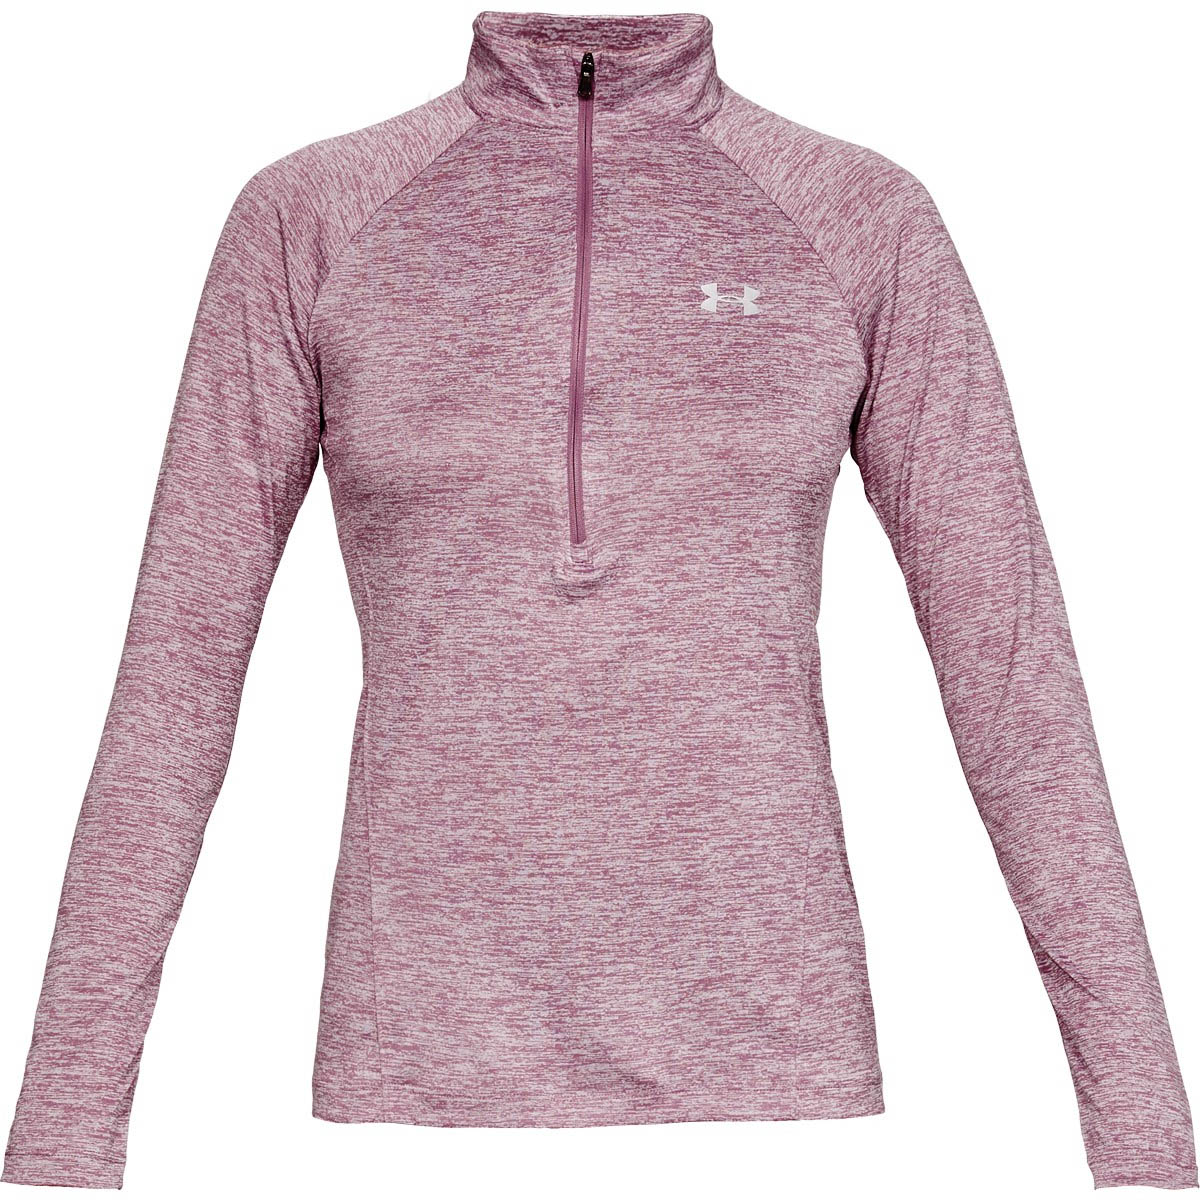 7f38b56e Details about Under Armour Tech Twist 1/2 Zip Womens Fitness Training Top  Purple